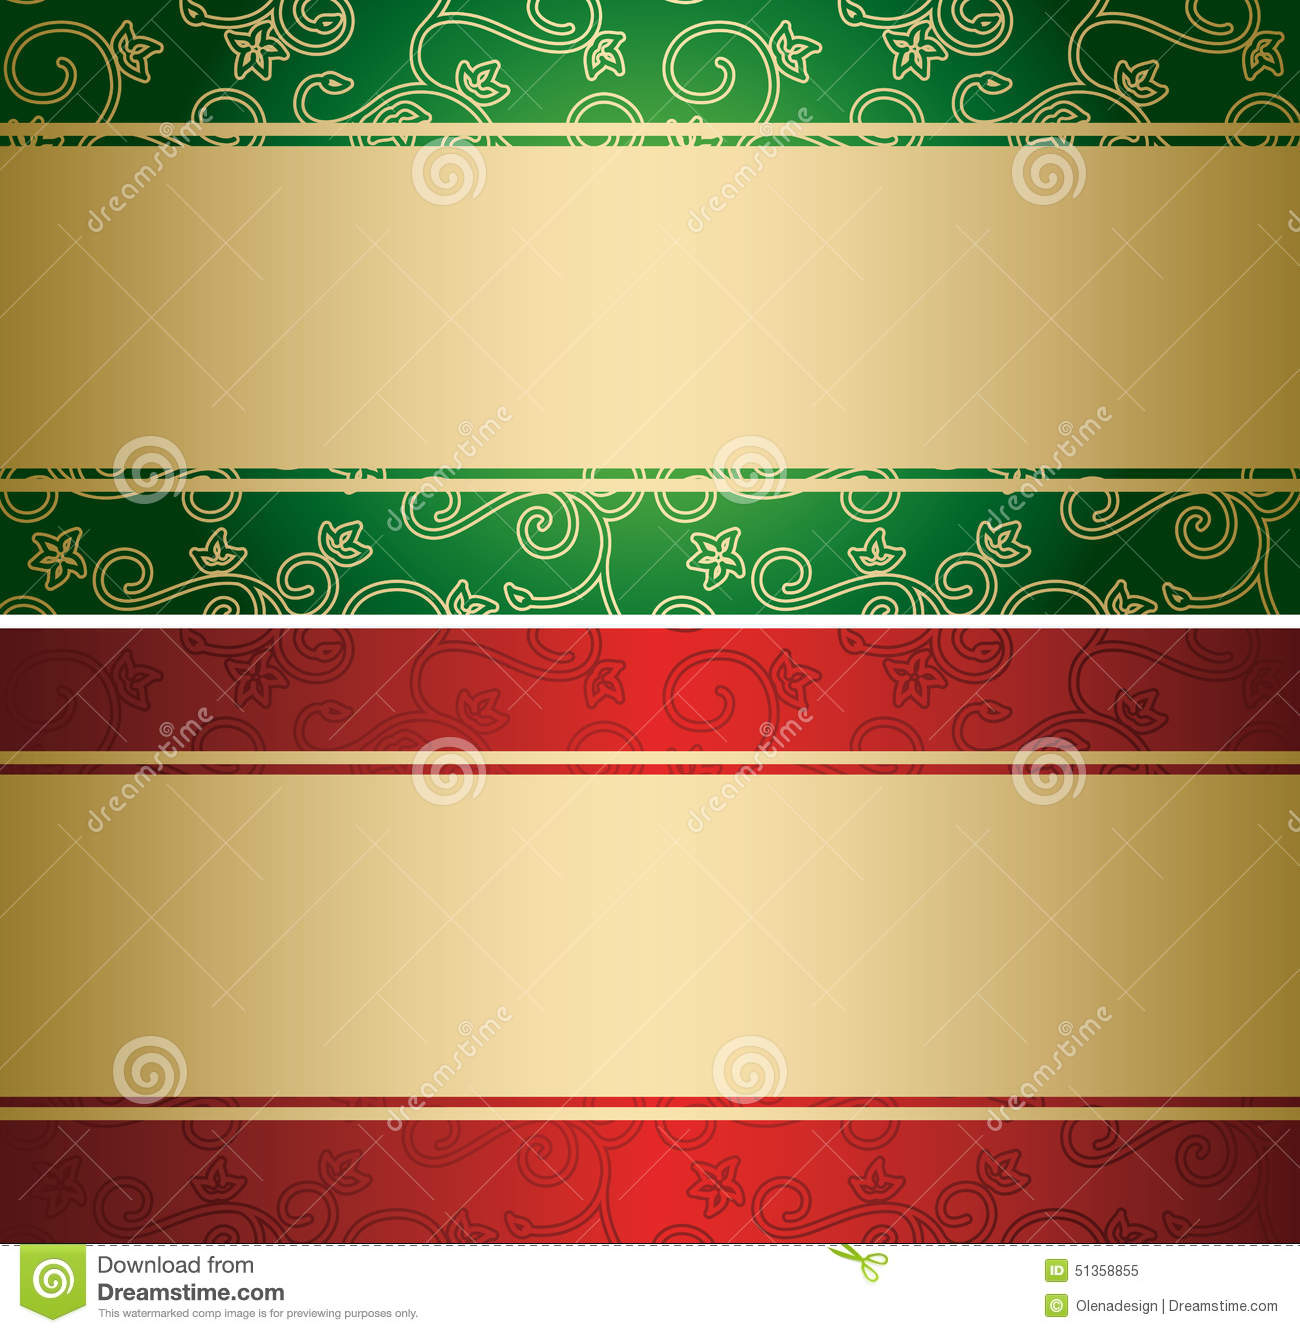 Red and green vector backgrounds with golden decor - cards